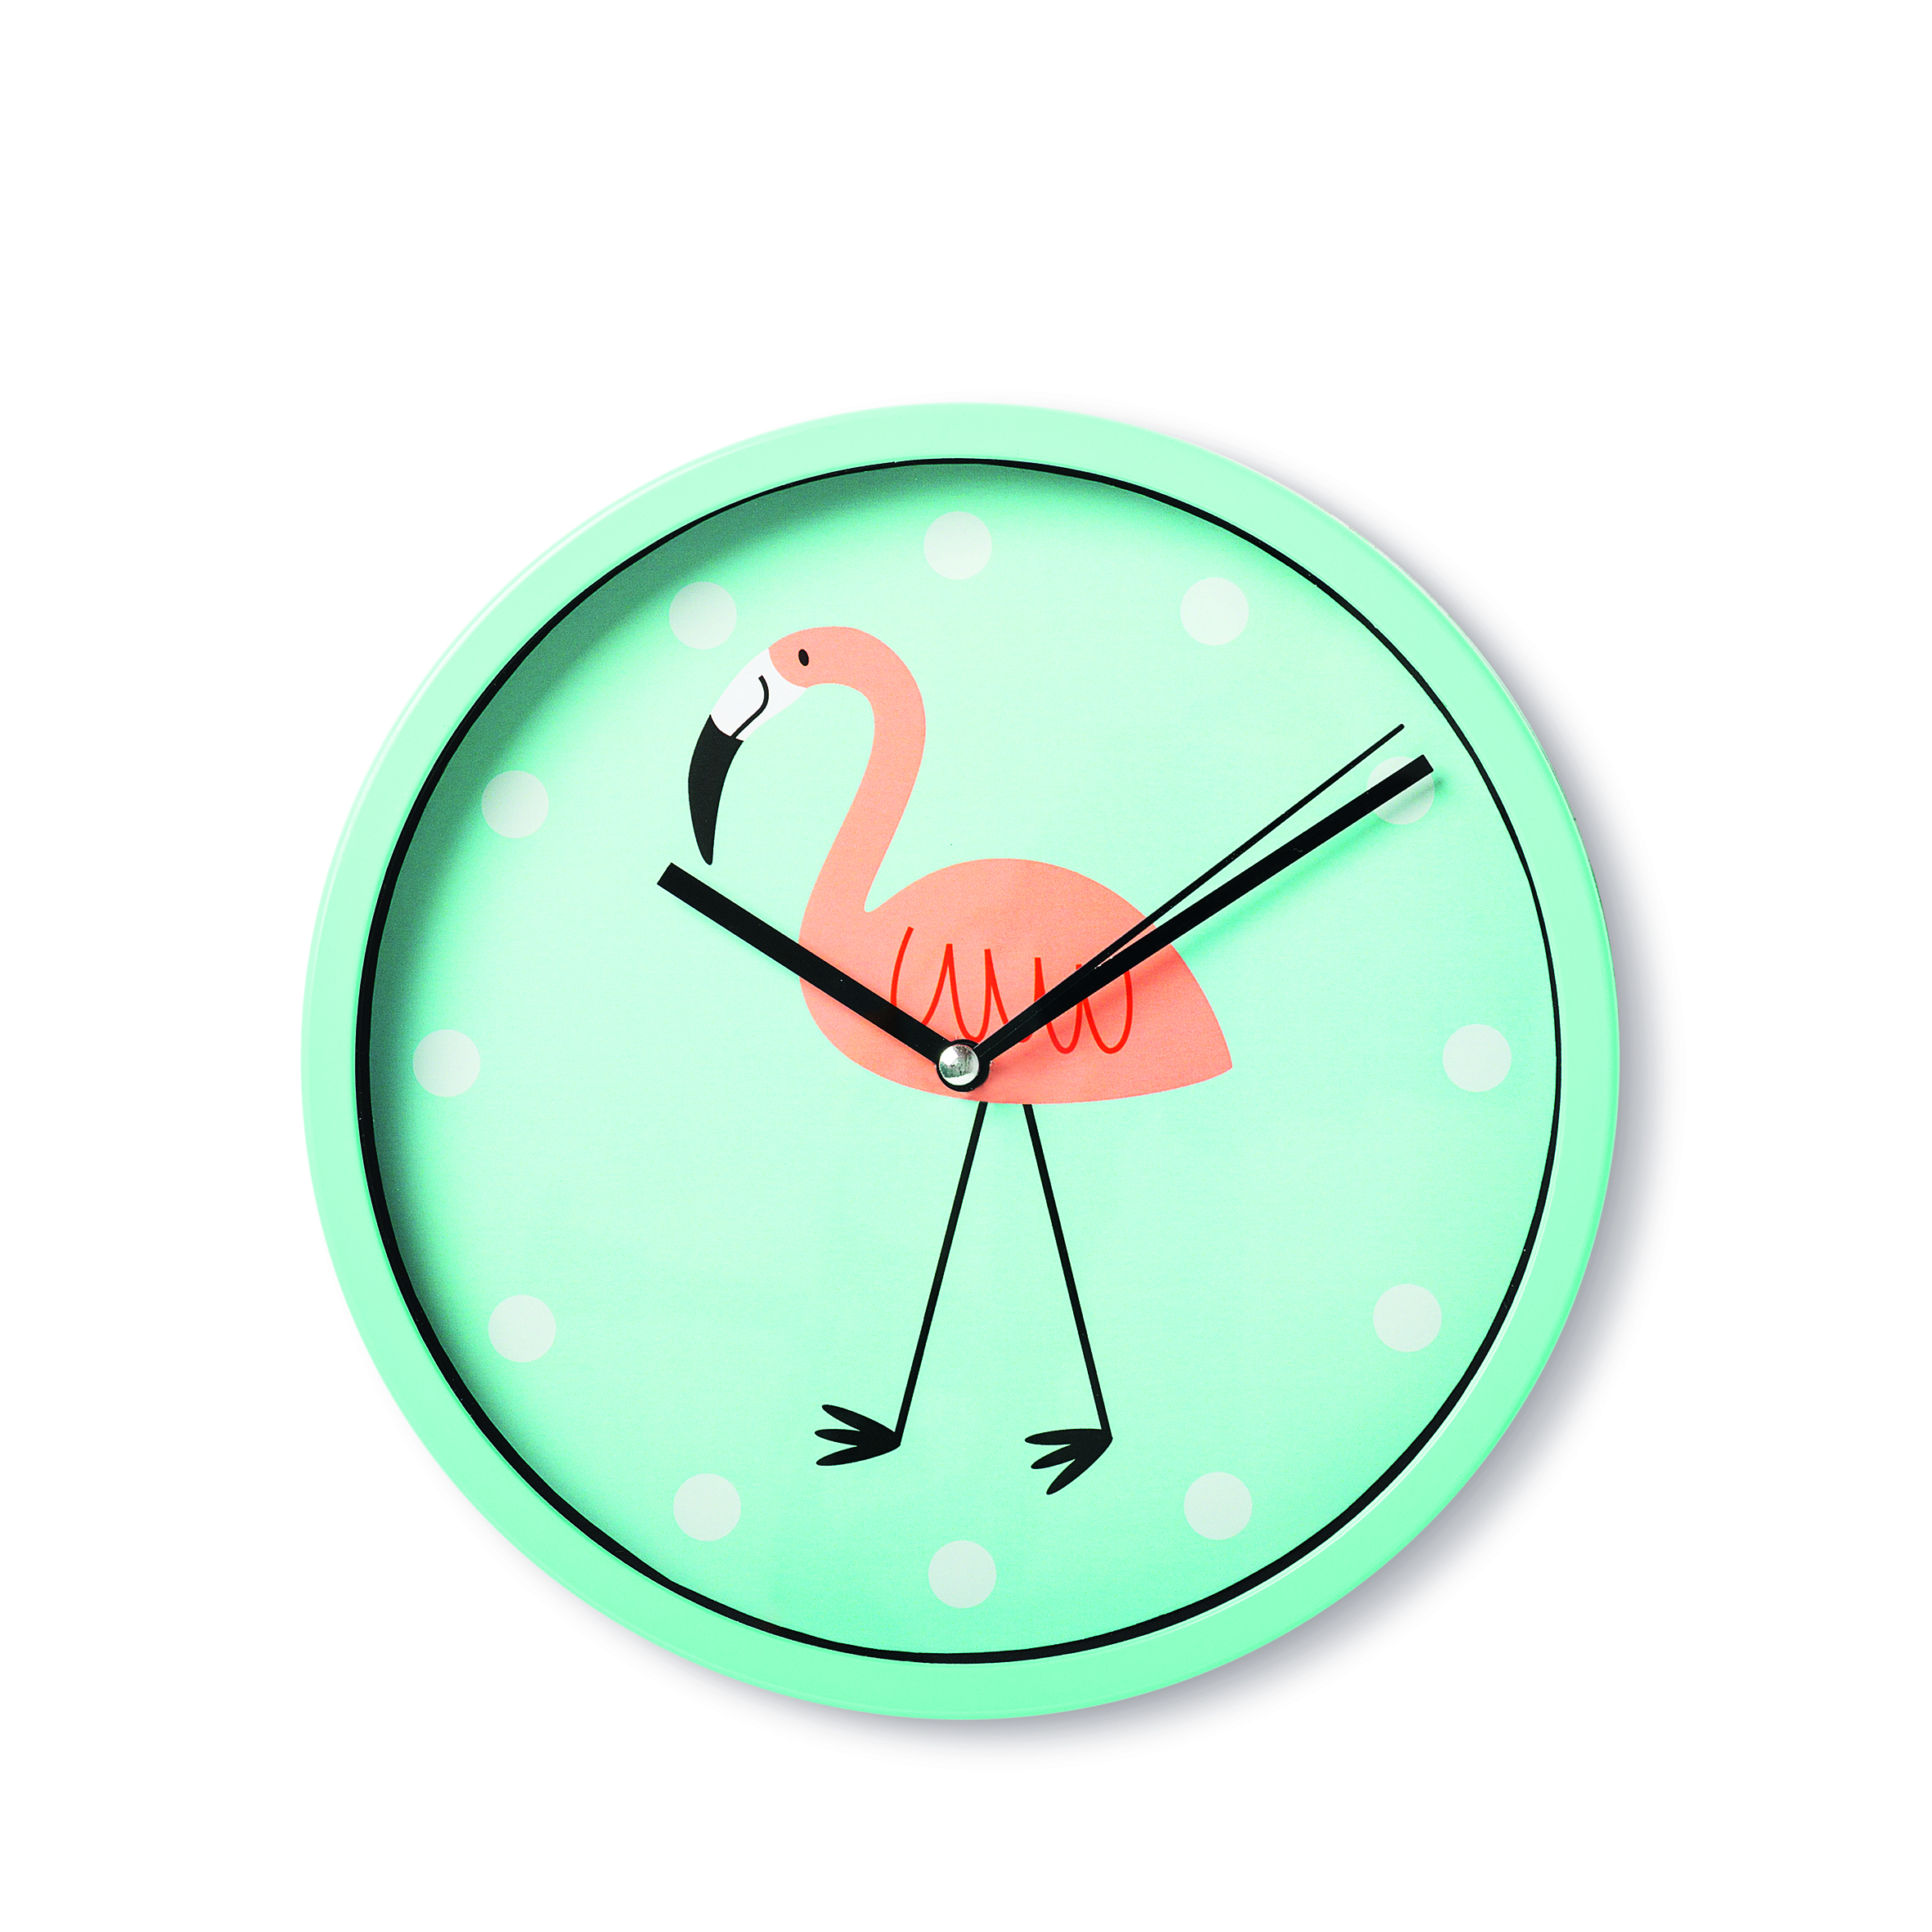 Flamingo wall clock, £5 from Tiger 1003602_03